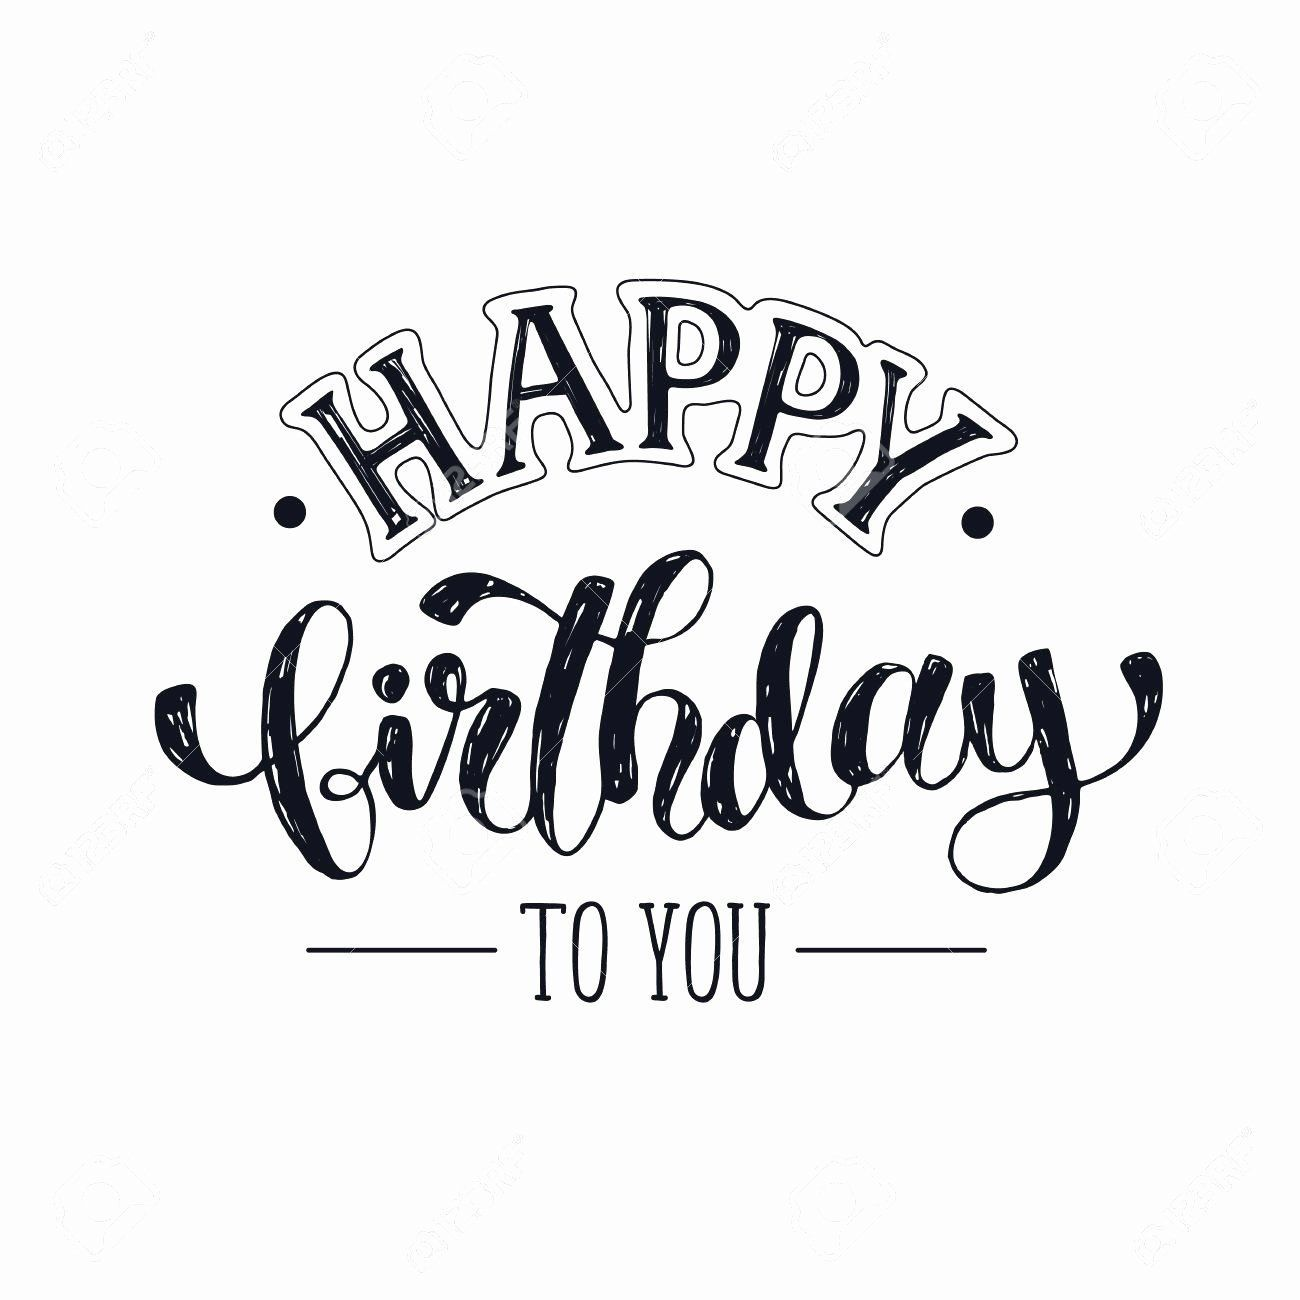 003 Incredible Happy Birthday Card Template For Word Example Full